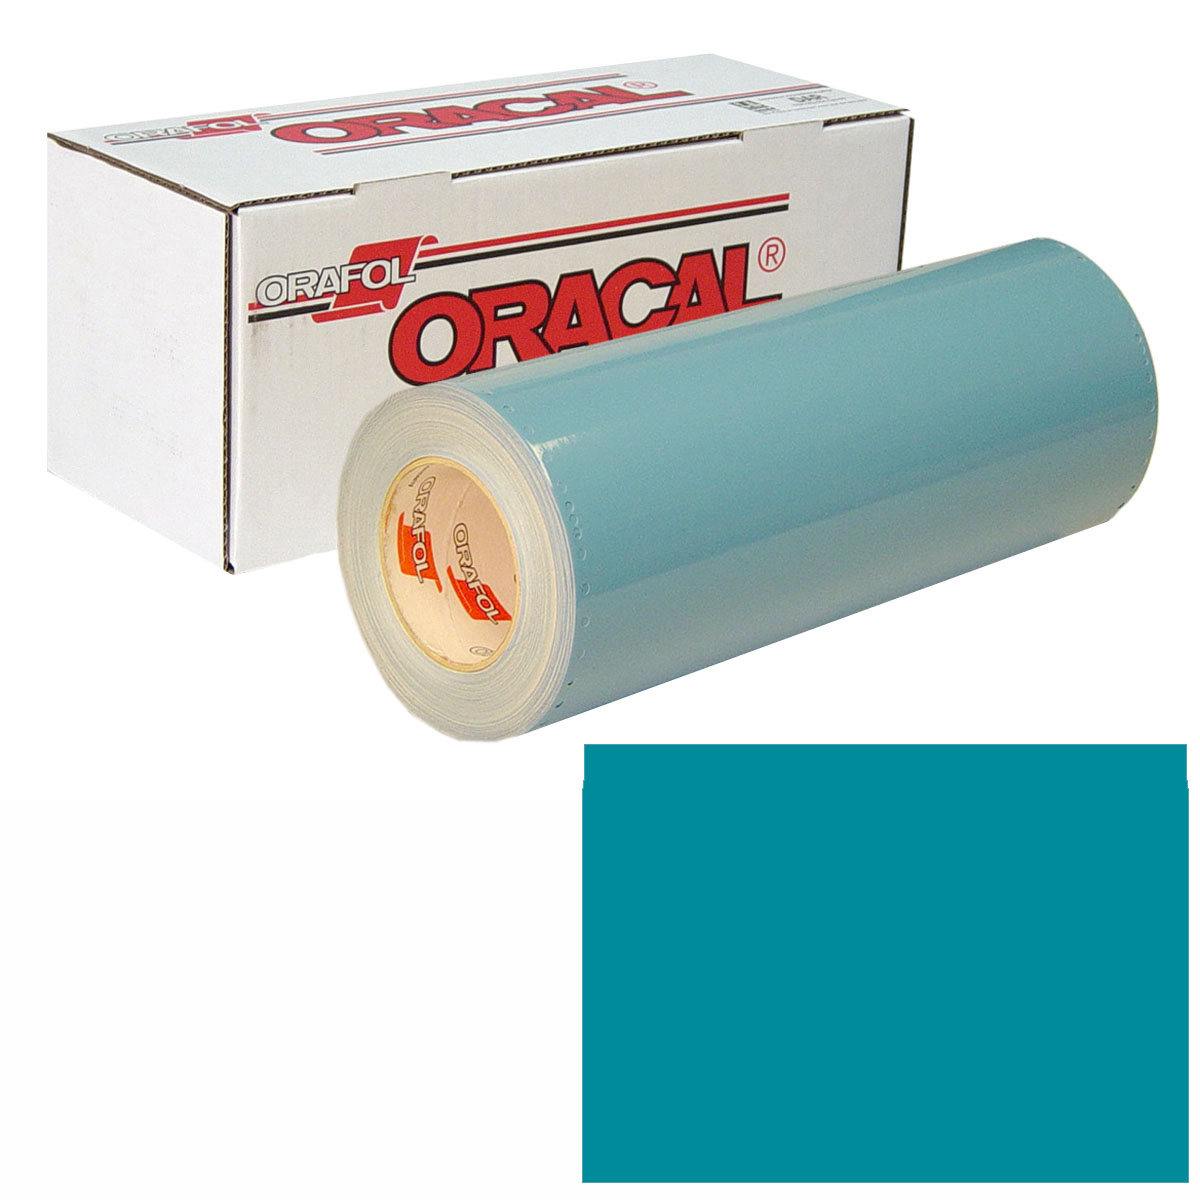 ORACAL 751 30in X 50yd 066 Turquoise Blue